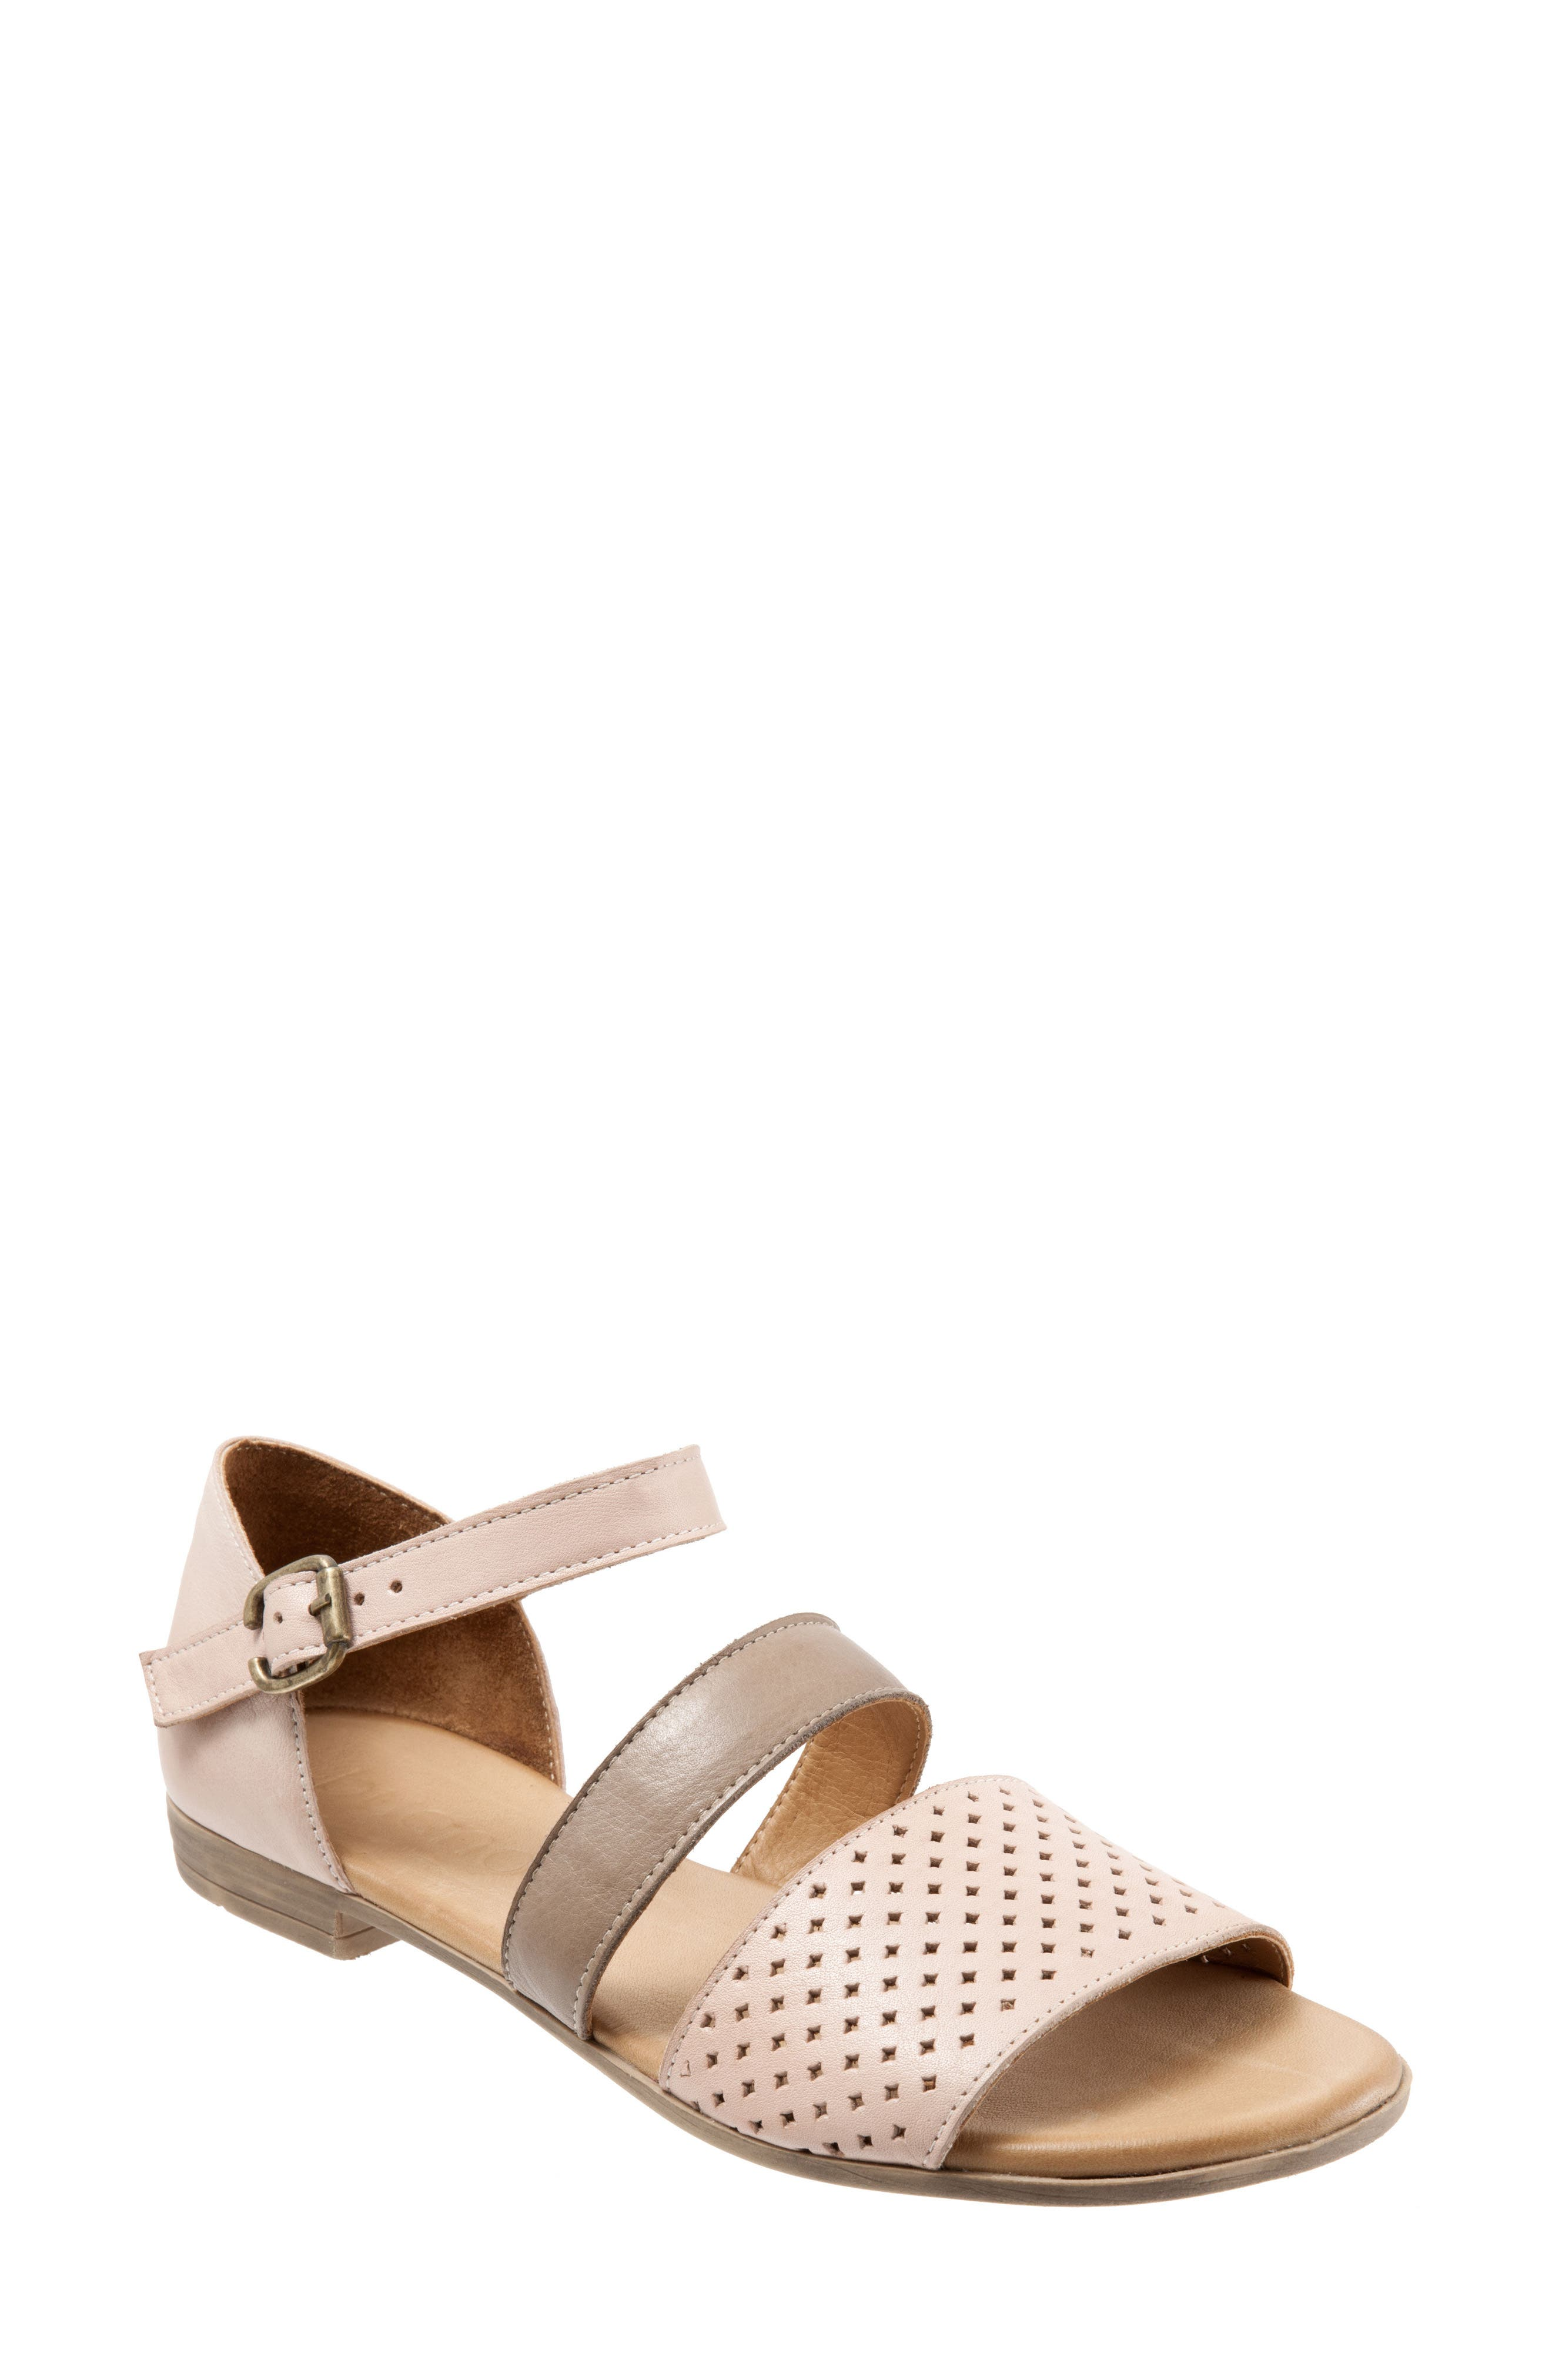 Janet Perforated Flat Sandal,                         Main,                         color, Pale Pink Leather